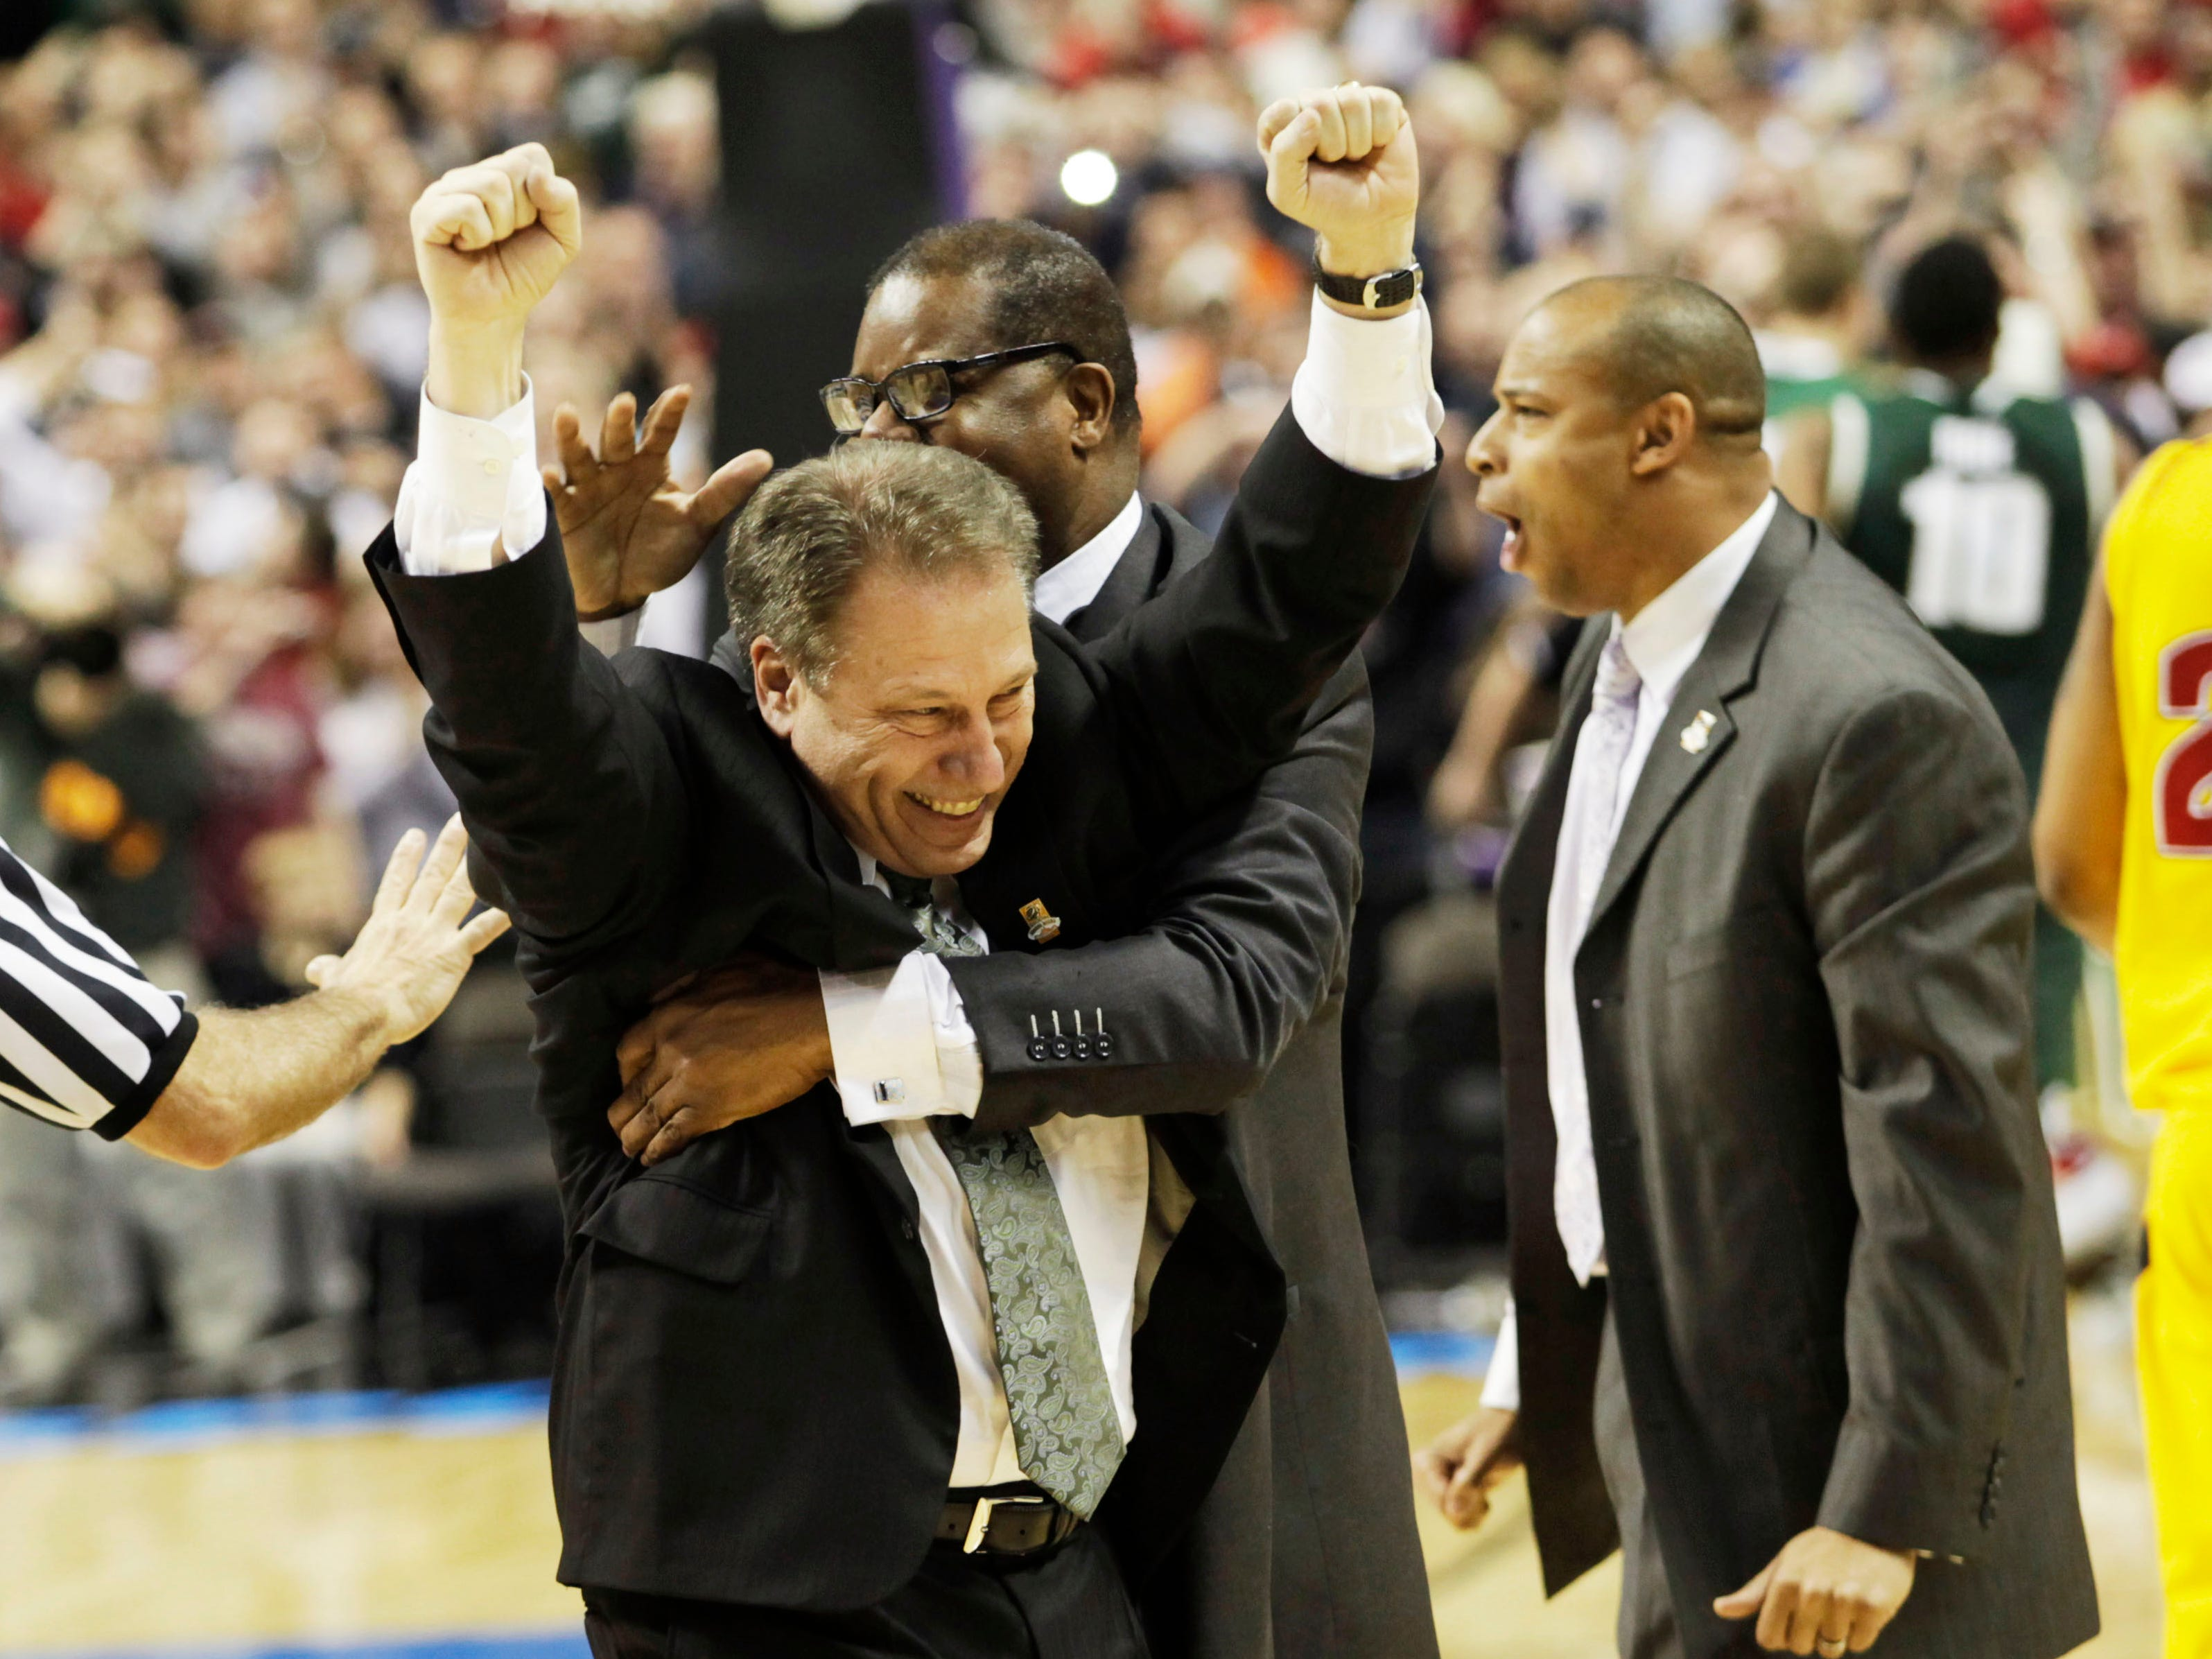 Michigan State head coach Tom Izzo, left, celebrates with assistant coaches Mark, Montgomery, right, and Dwayne Stephens, center, after Michigan State beat Maryland 85-83 in an NCAA second-round college basketball game in Spokane, Wash., Sunday, March 21, 2010. (AP Photo/Rajah Bose)